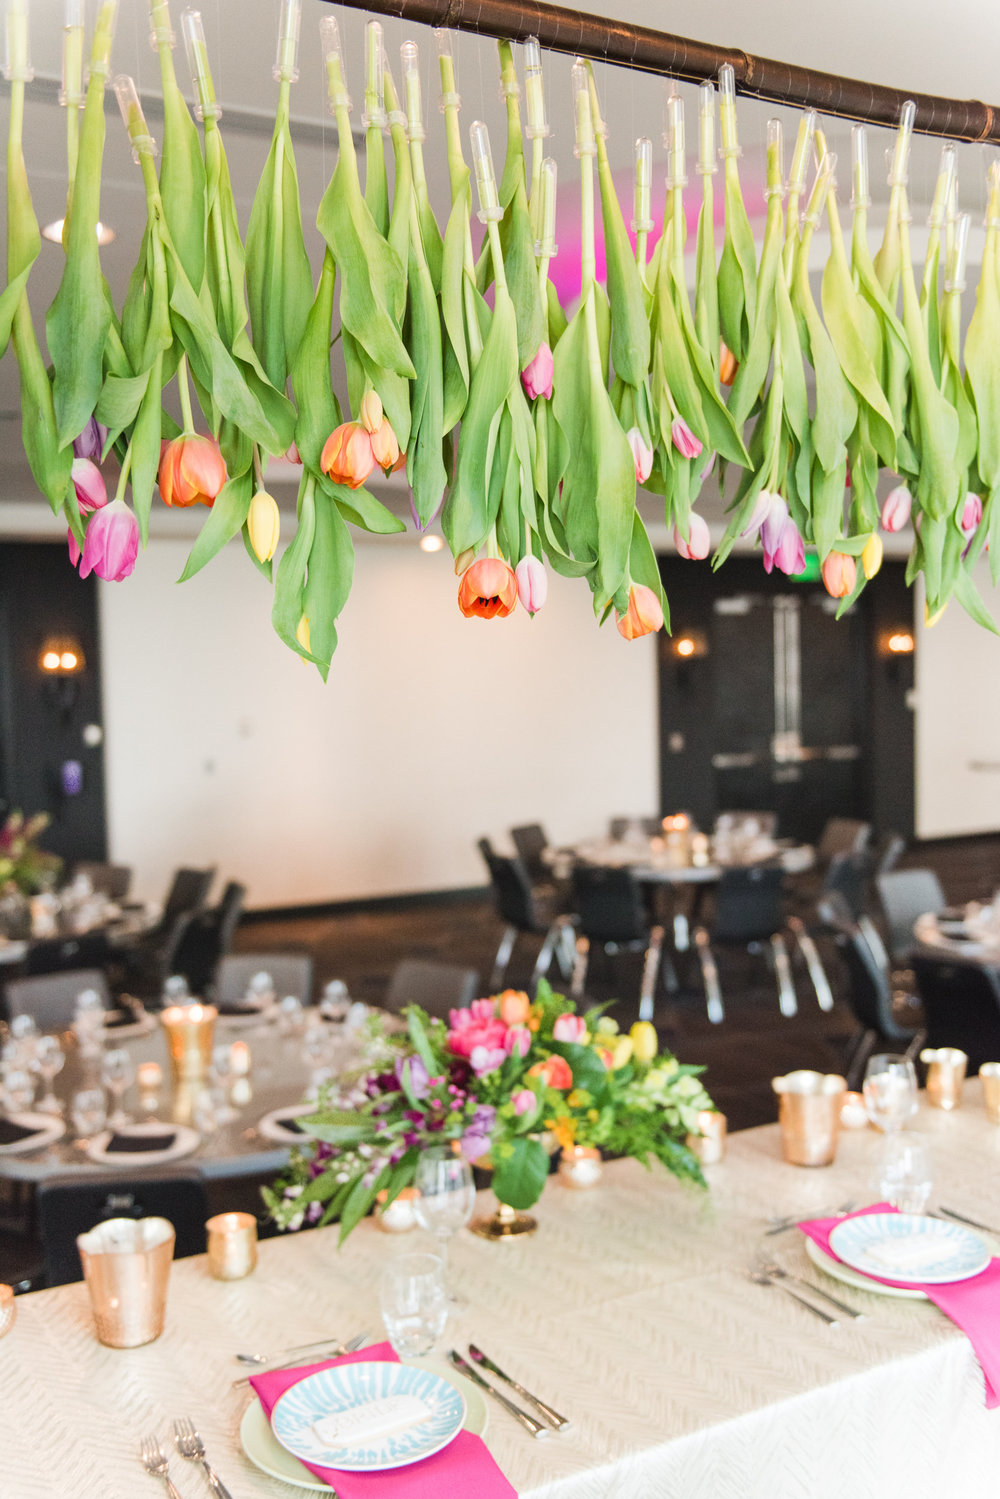 Hanging tulips, hanging flower installation  Jessica Wonders Events, Minneapolis, MN